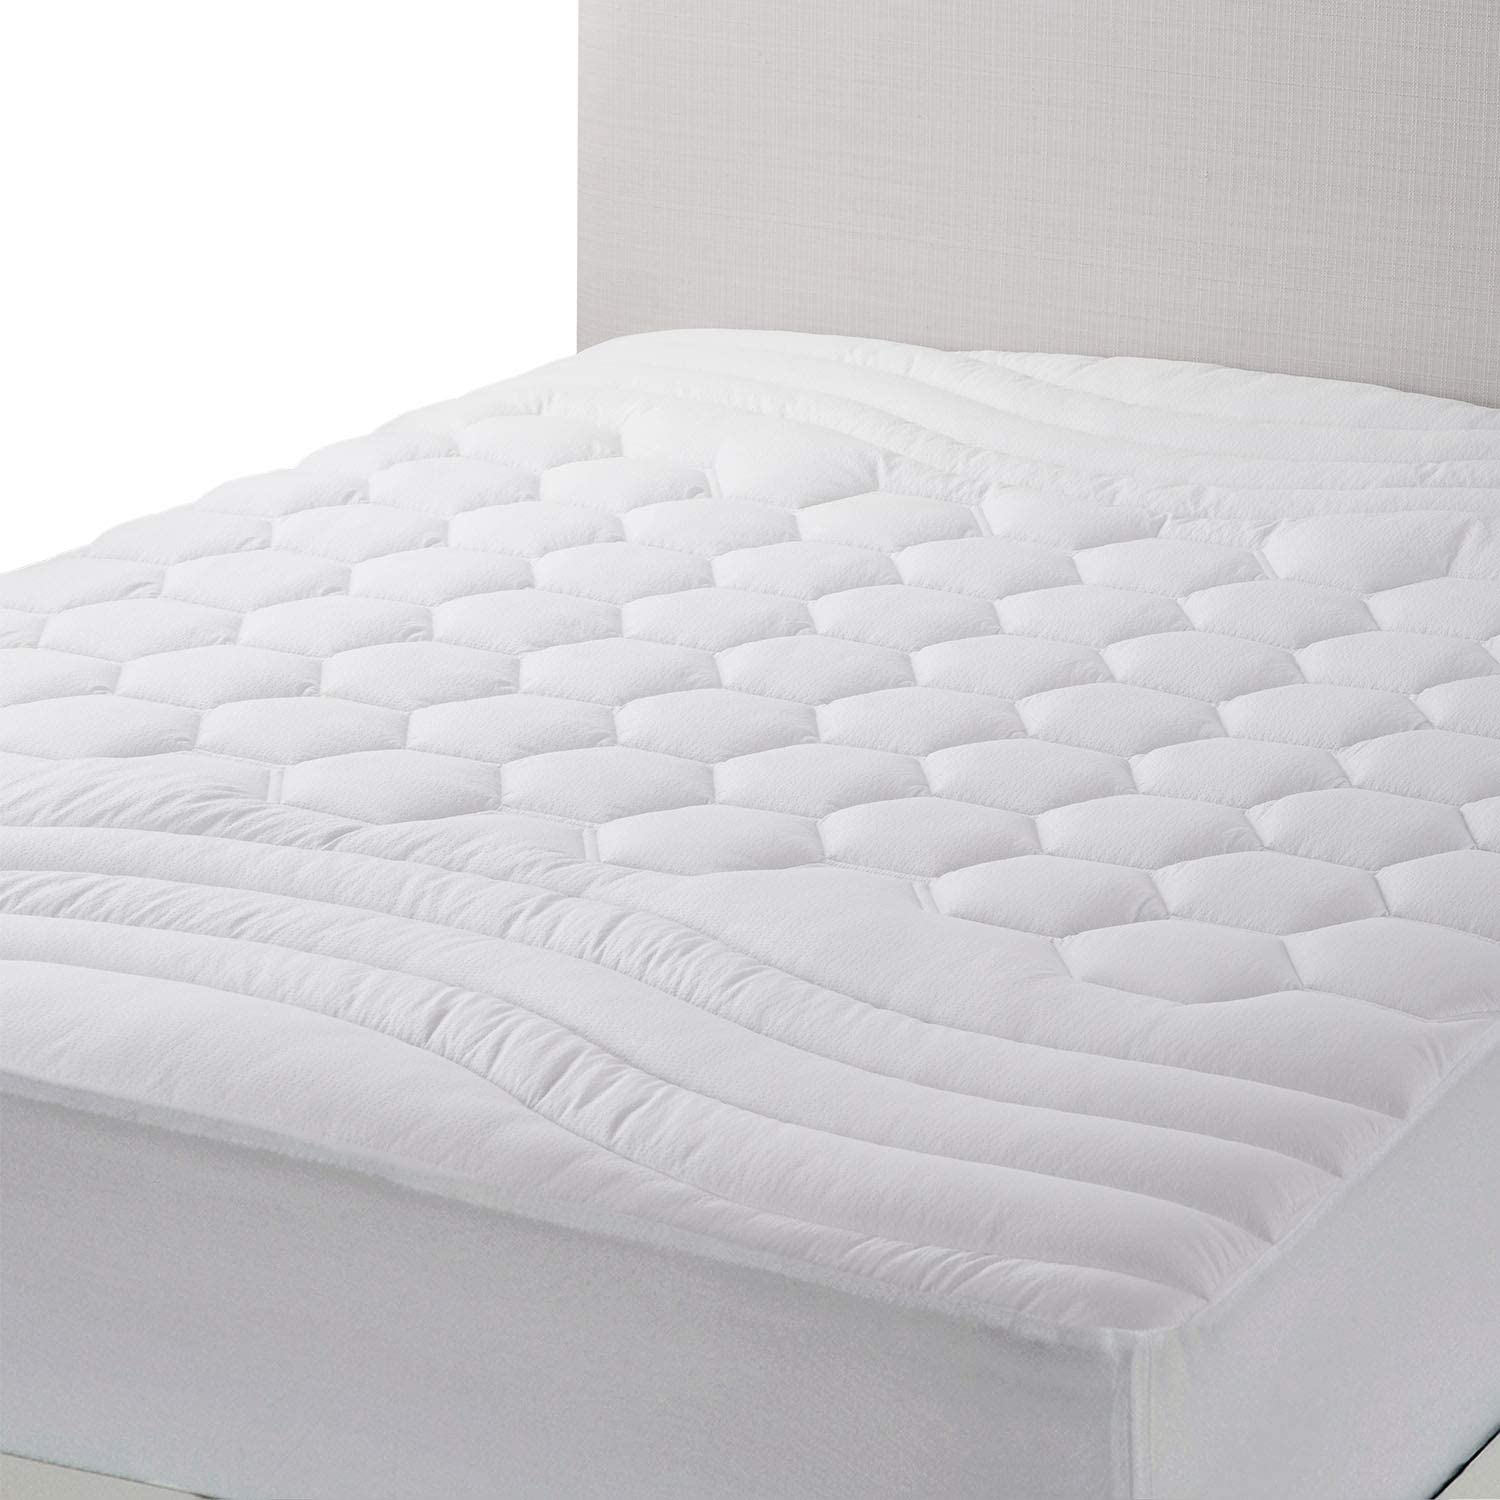 Odor Control Hypoallergenic 39x75 No Noise Total Protection Twin Mattress Pad